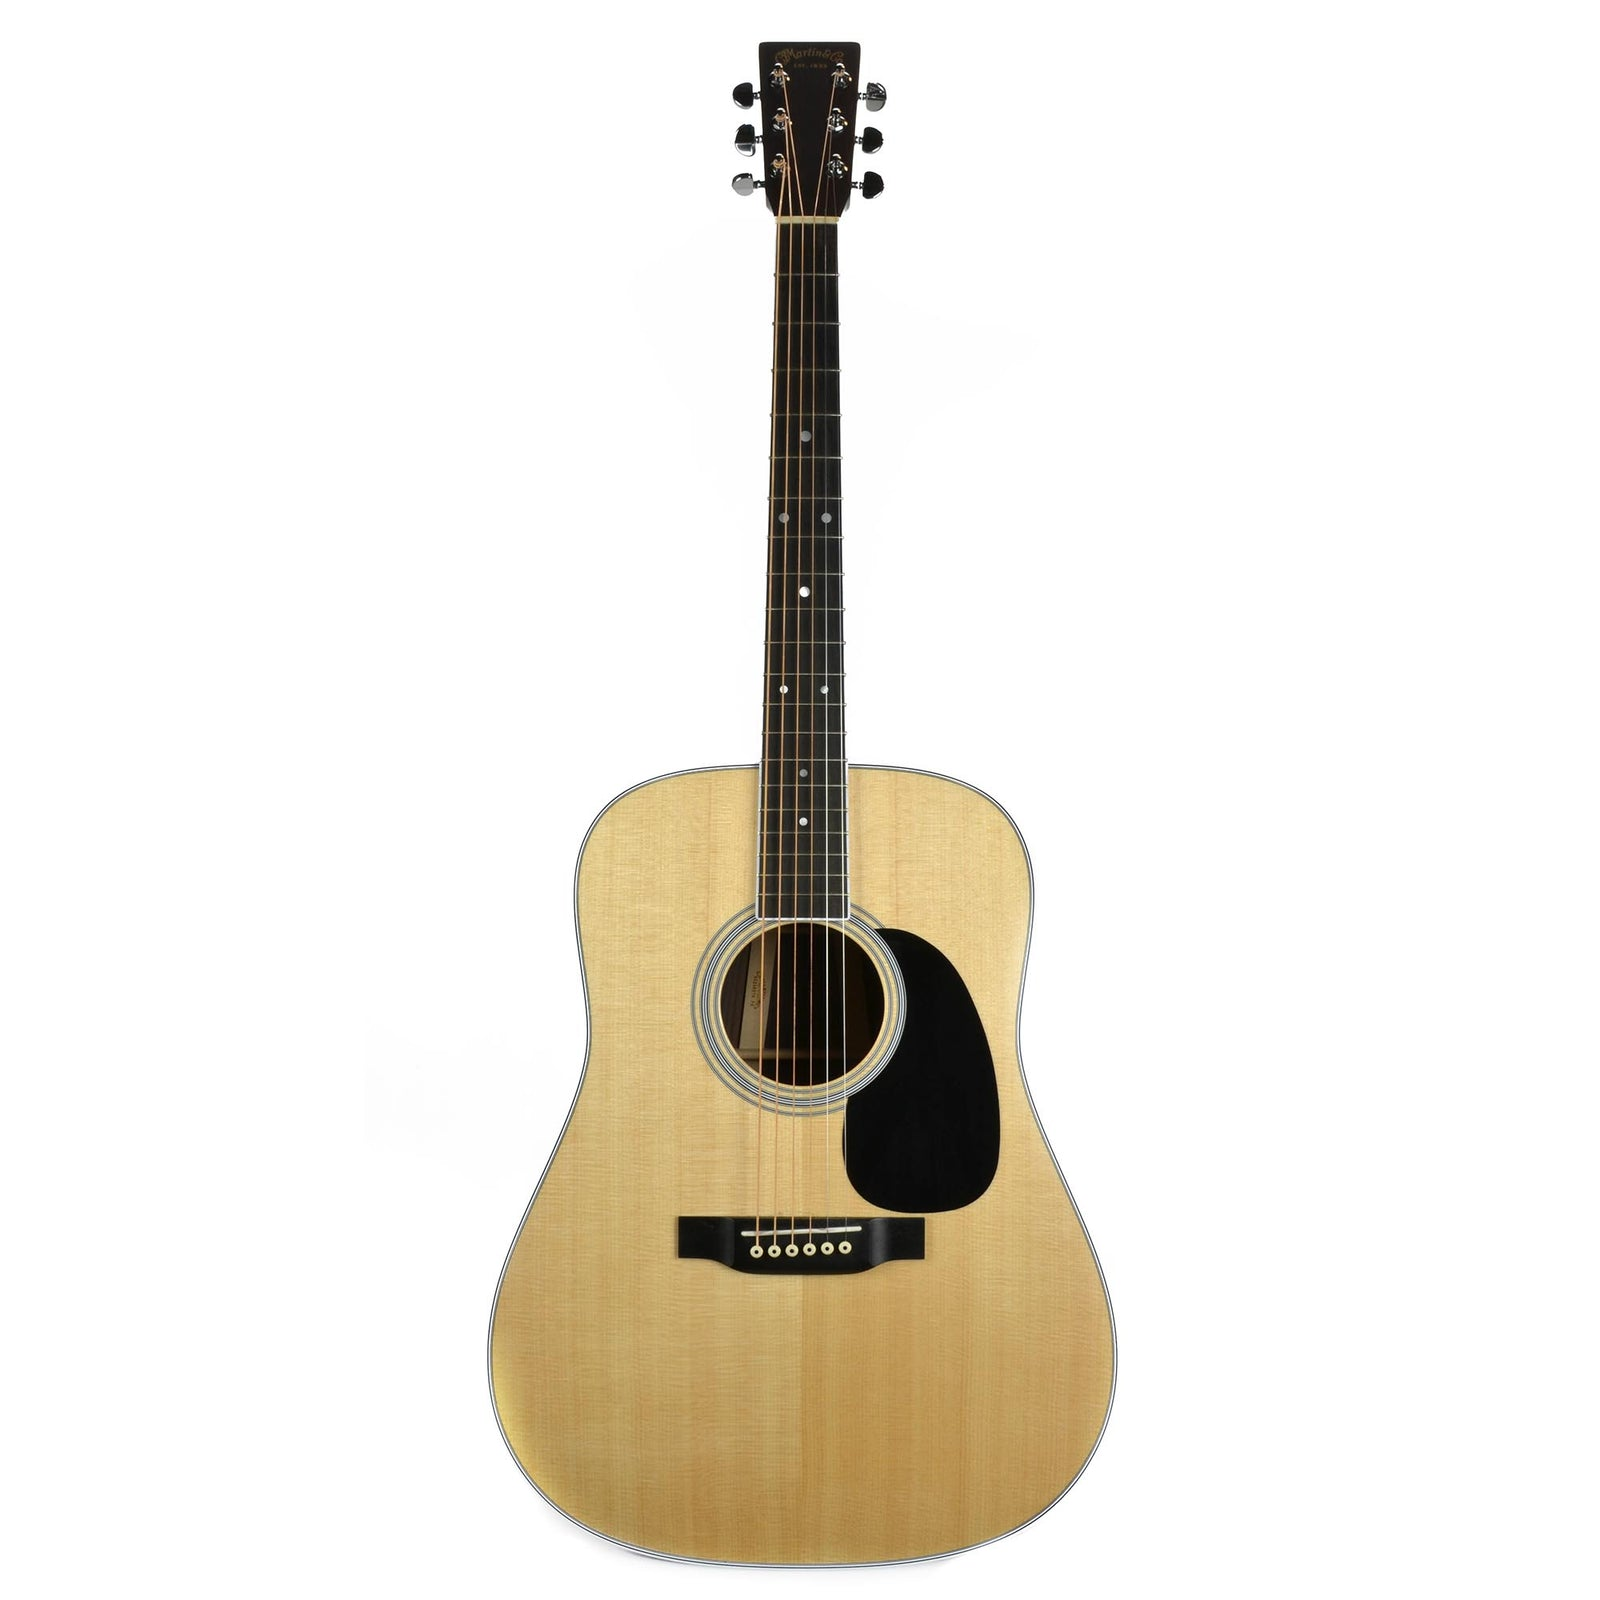 Martin D-35 Dreadnought - Used - Image: 3